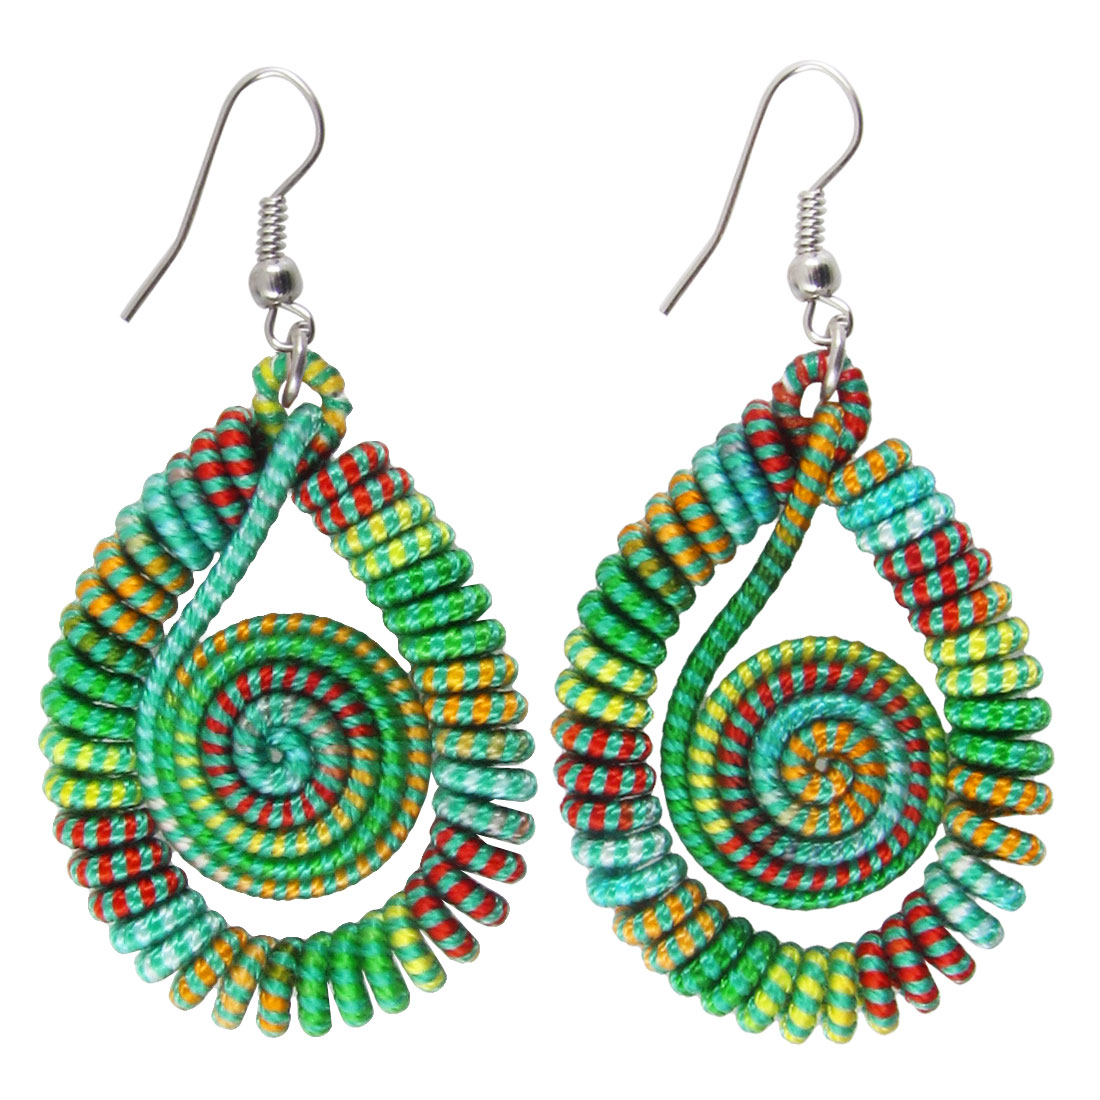 Pair Multicolor Thread Wrapped Oval Shape Spiral Design Pendant Hook Earrings